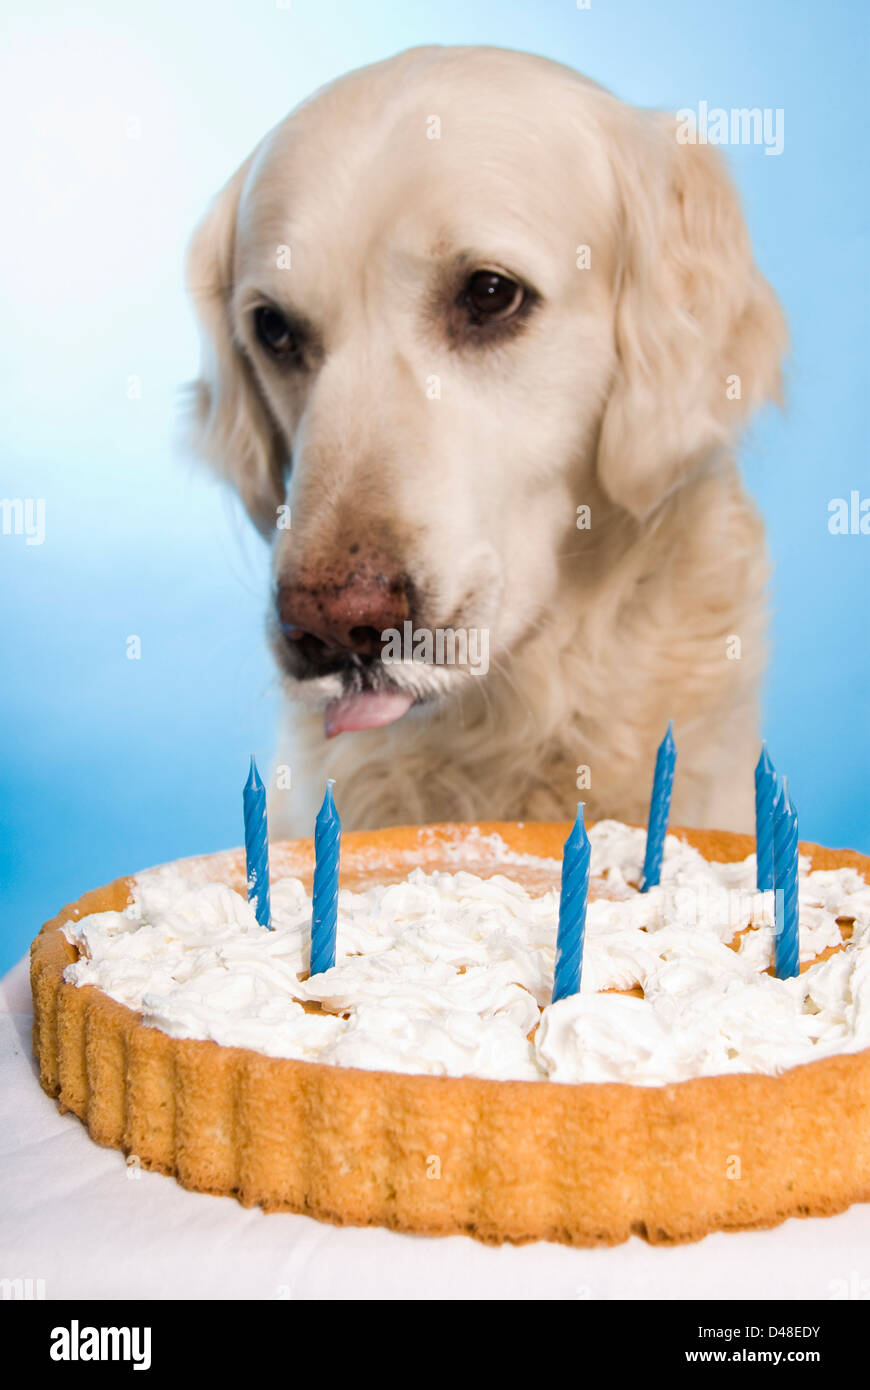 Golden Retriever Dog Eating A Birthday Cake Stock Photo 54276711